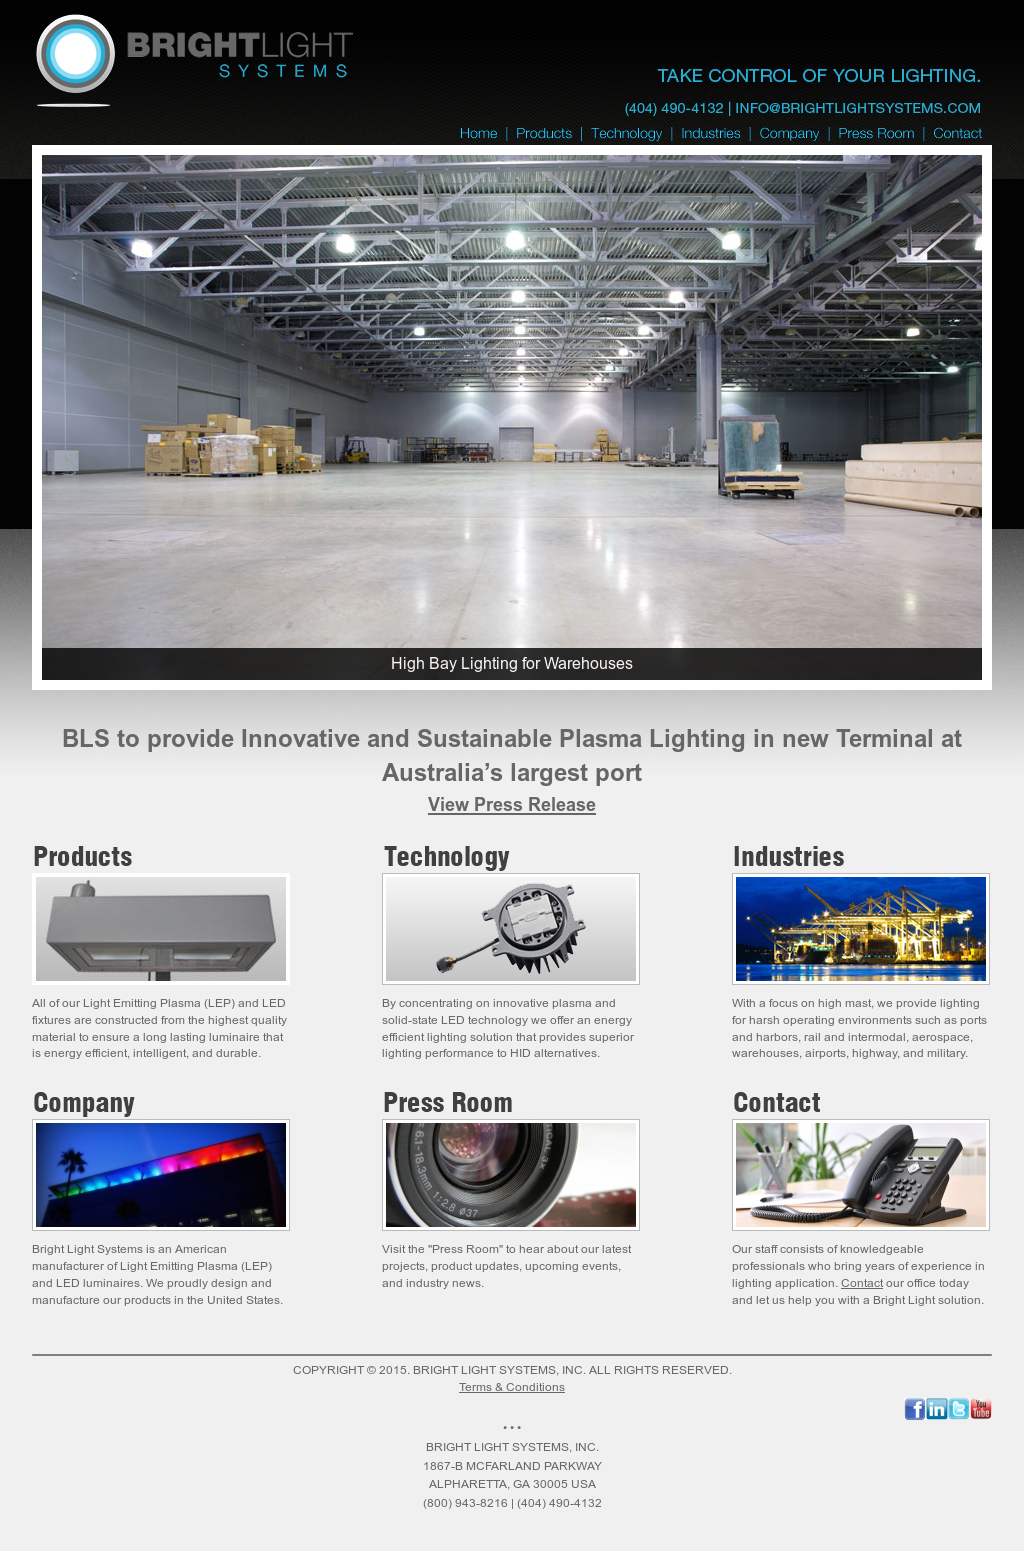 Bright Light Systems Competitors Revenue and Employees - Owler Company Profile & Bright Light Systems Competitors Revenue and Employees - Owler ...